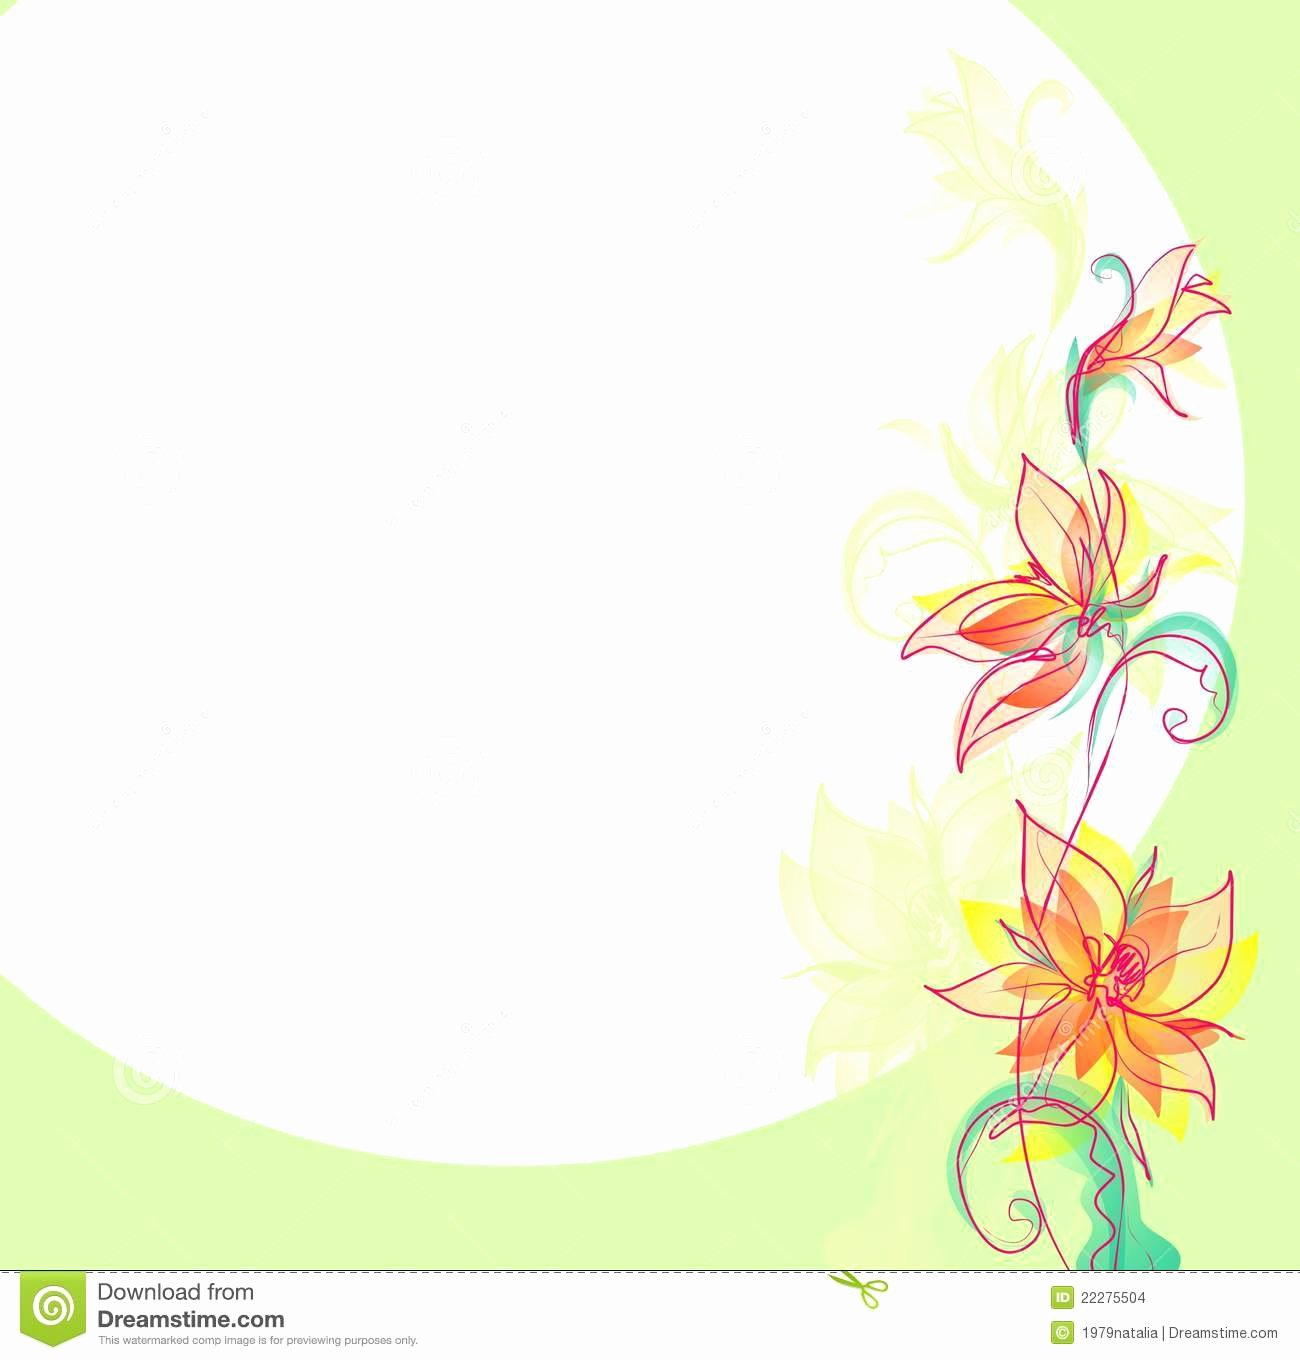 Flower Background Design Images Fresh Flower Background for Design Stock Illustration